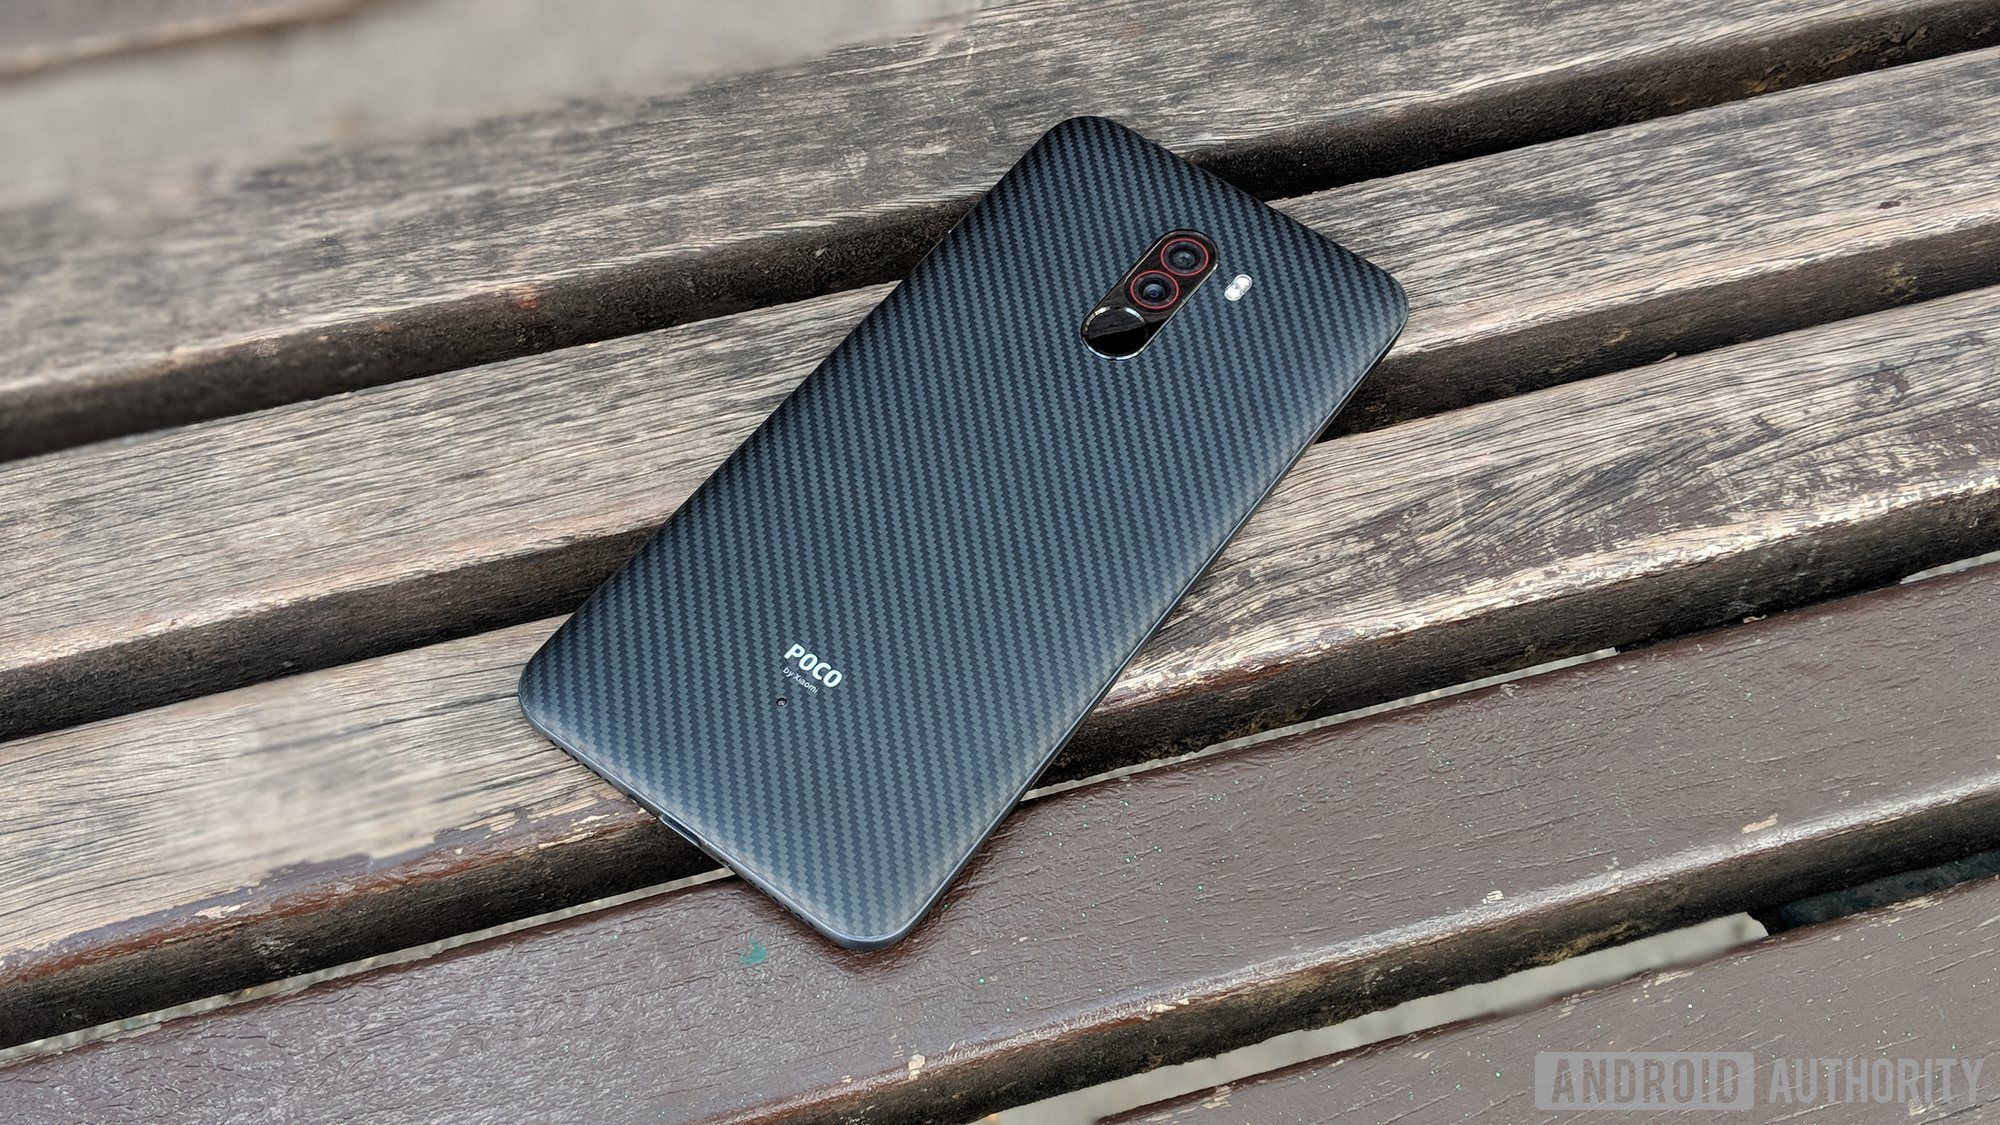 Reddit comments influenced the design and specs of Xiaomi